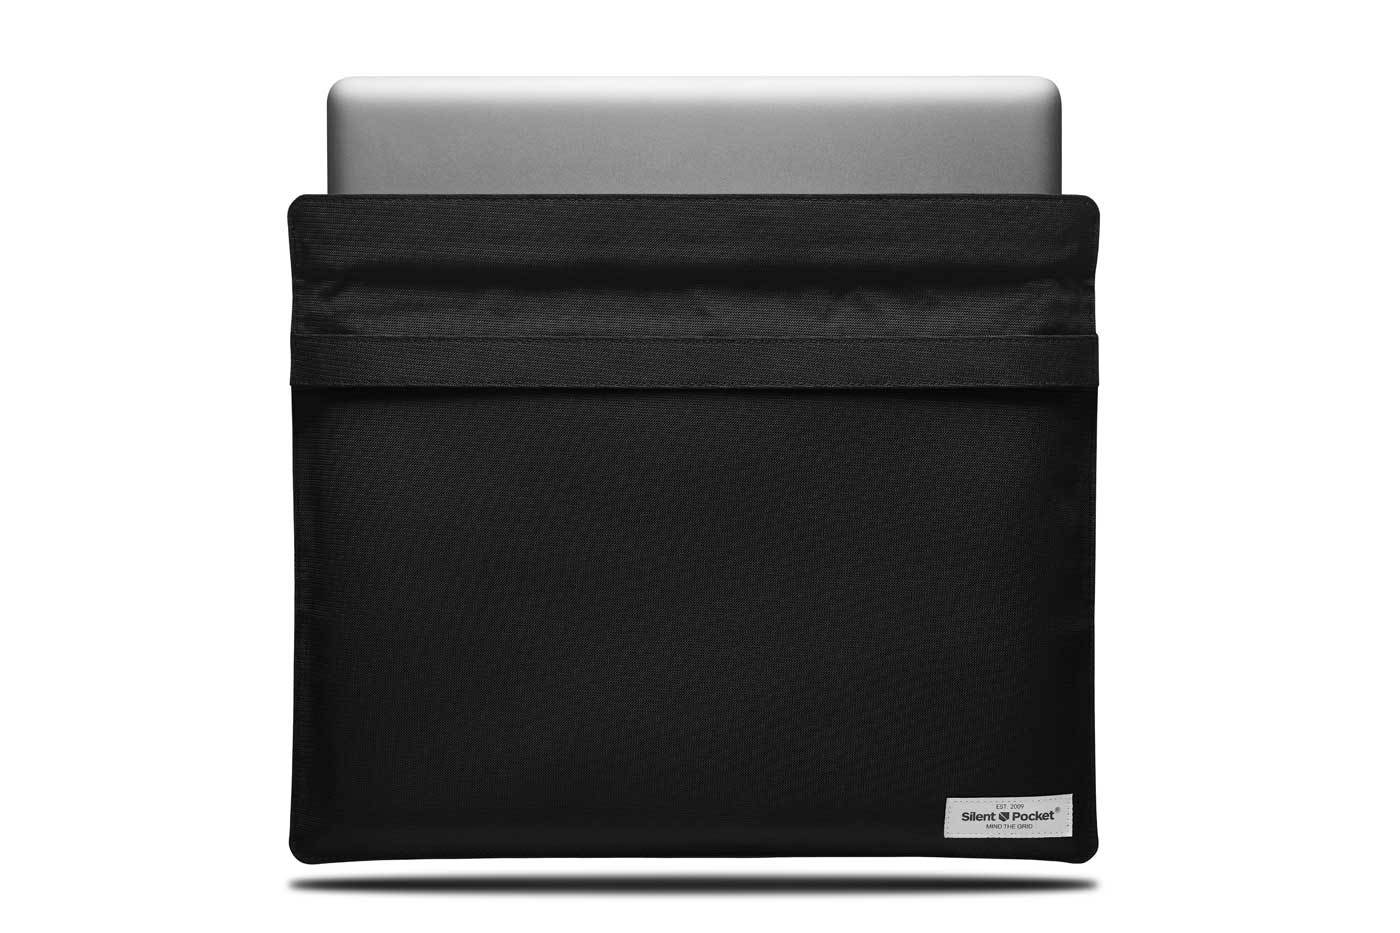 faraday-cage-laptop-sleeve-black-silent-pocket_2048x.jpg